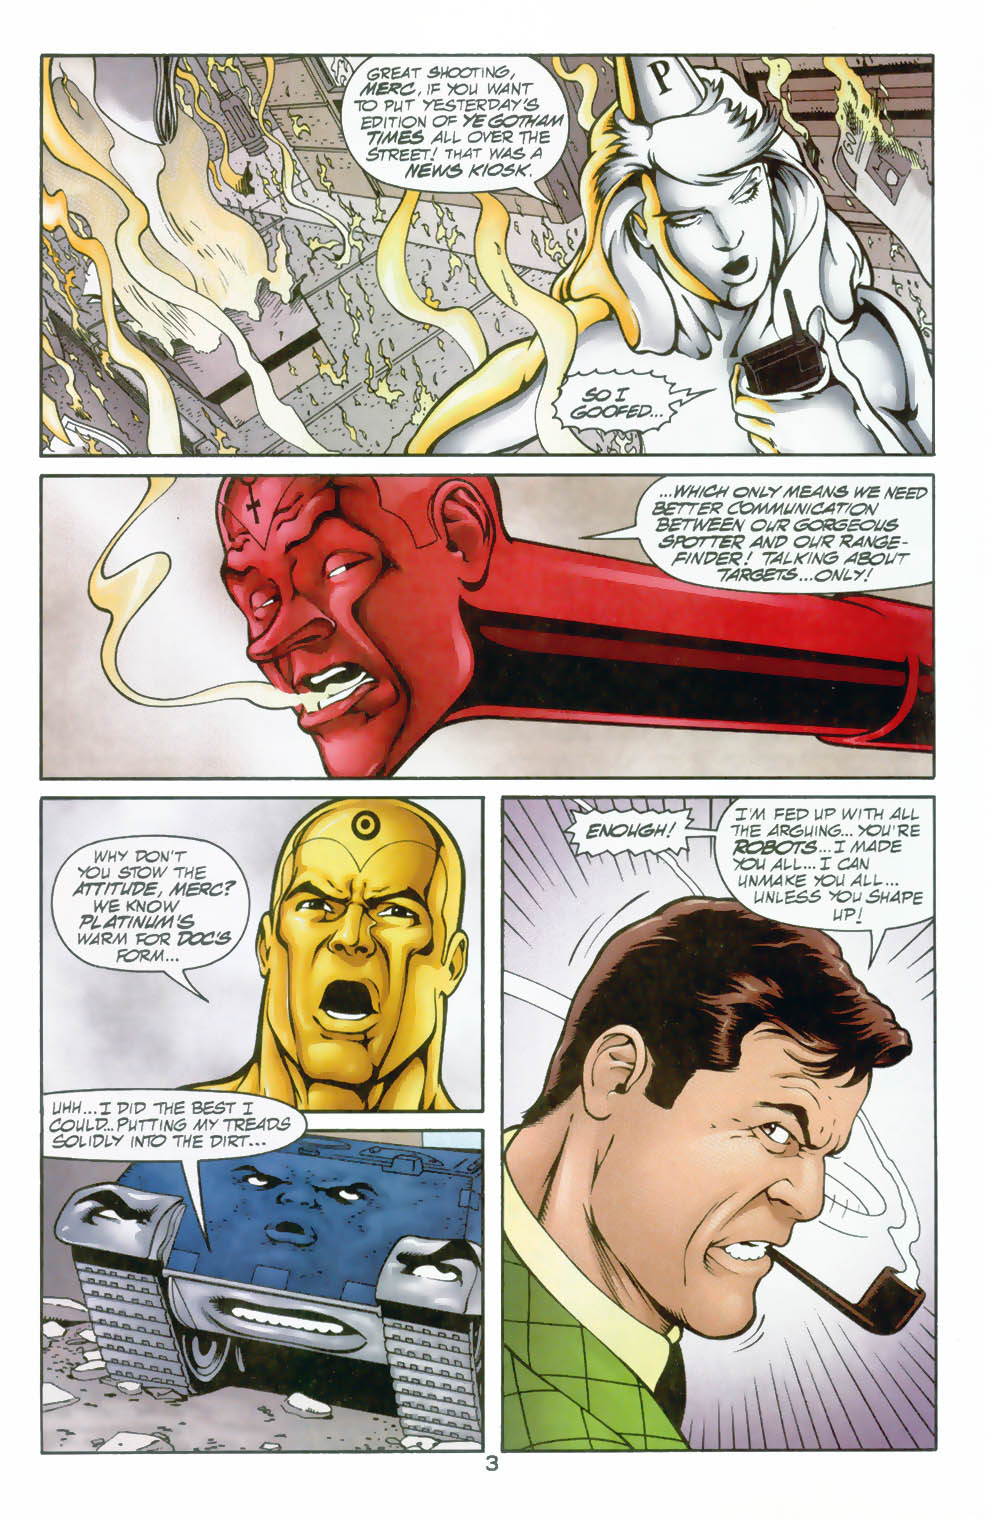 Read online Silver Age: The Brave and the Bold comic -  Issue # Full - 4